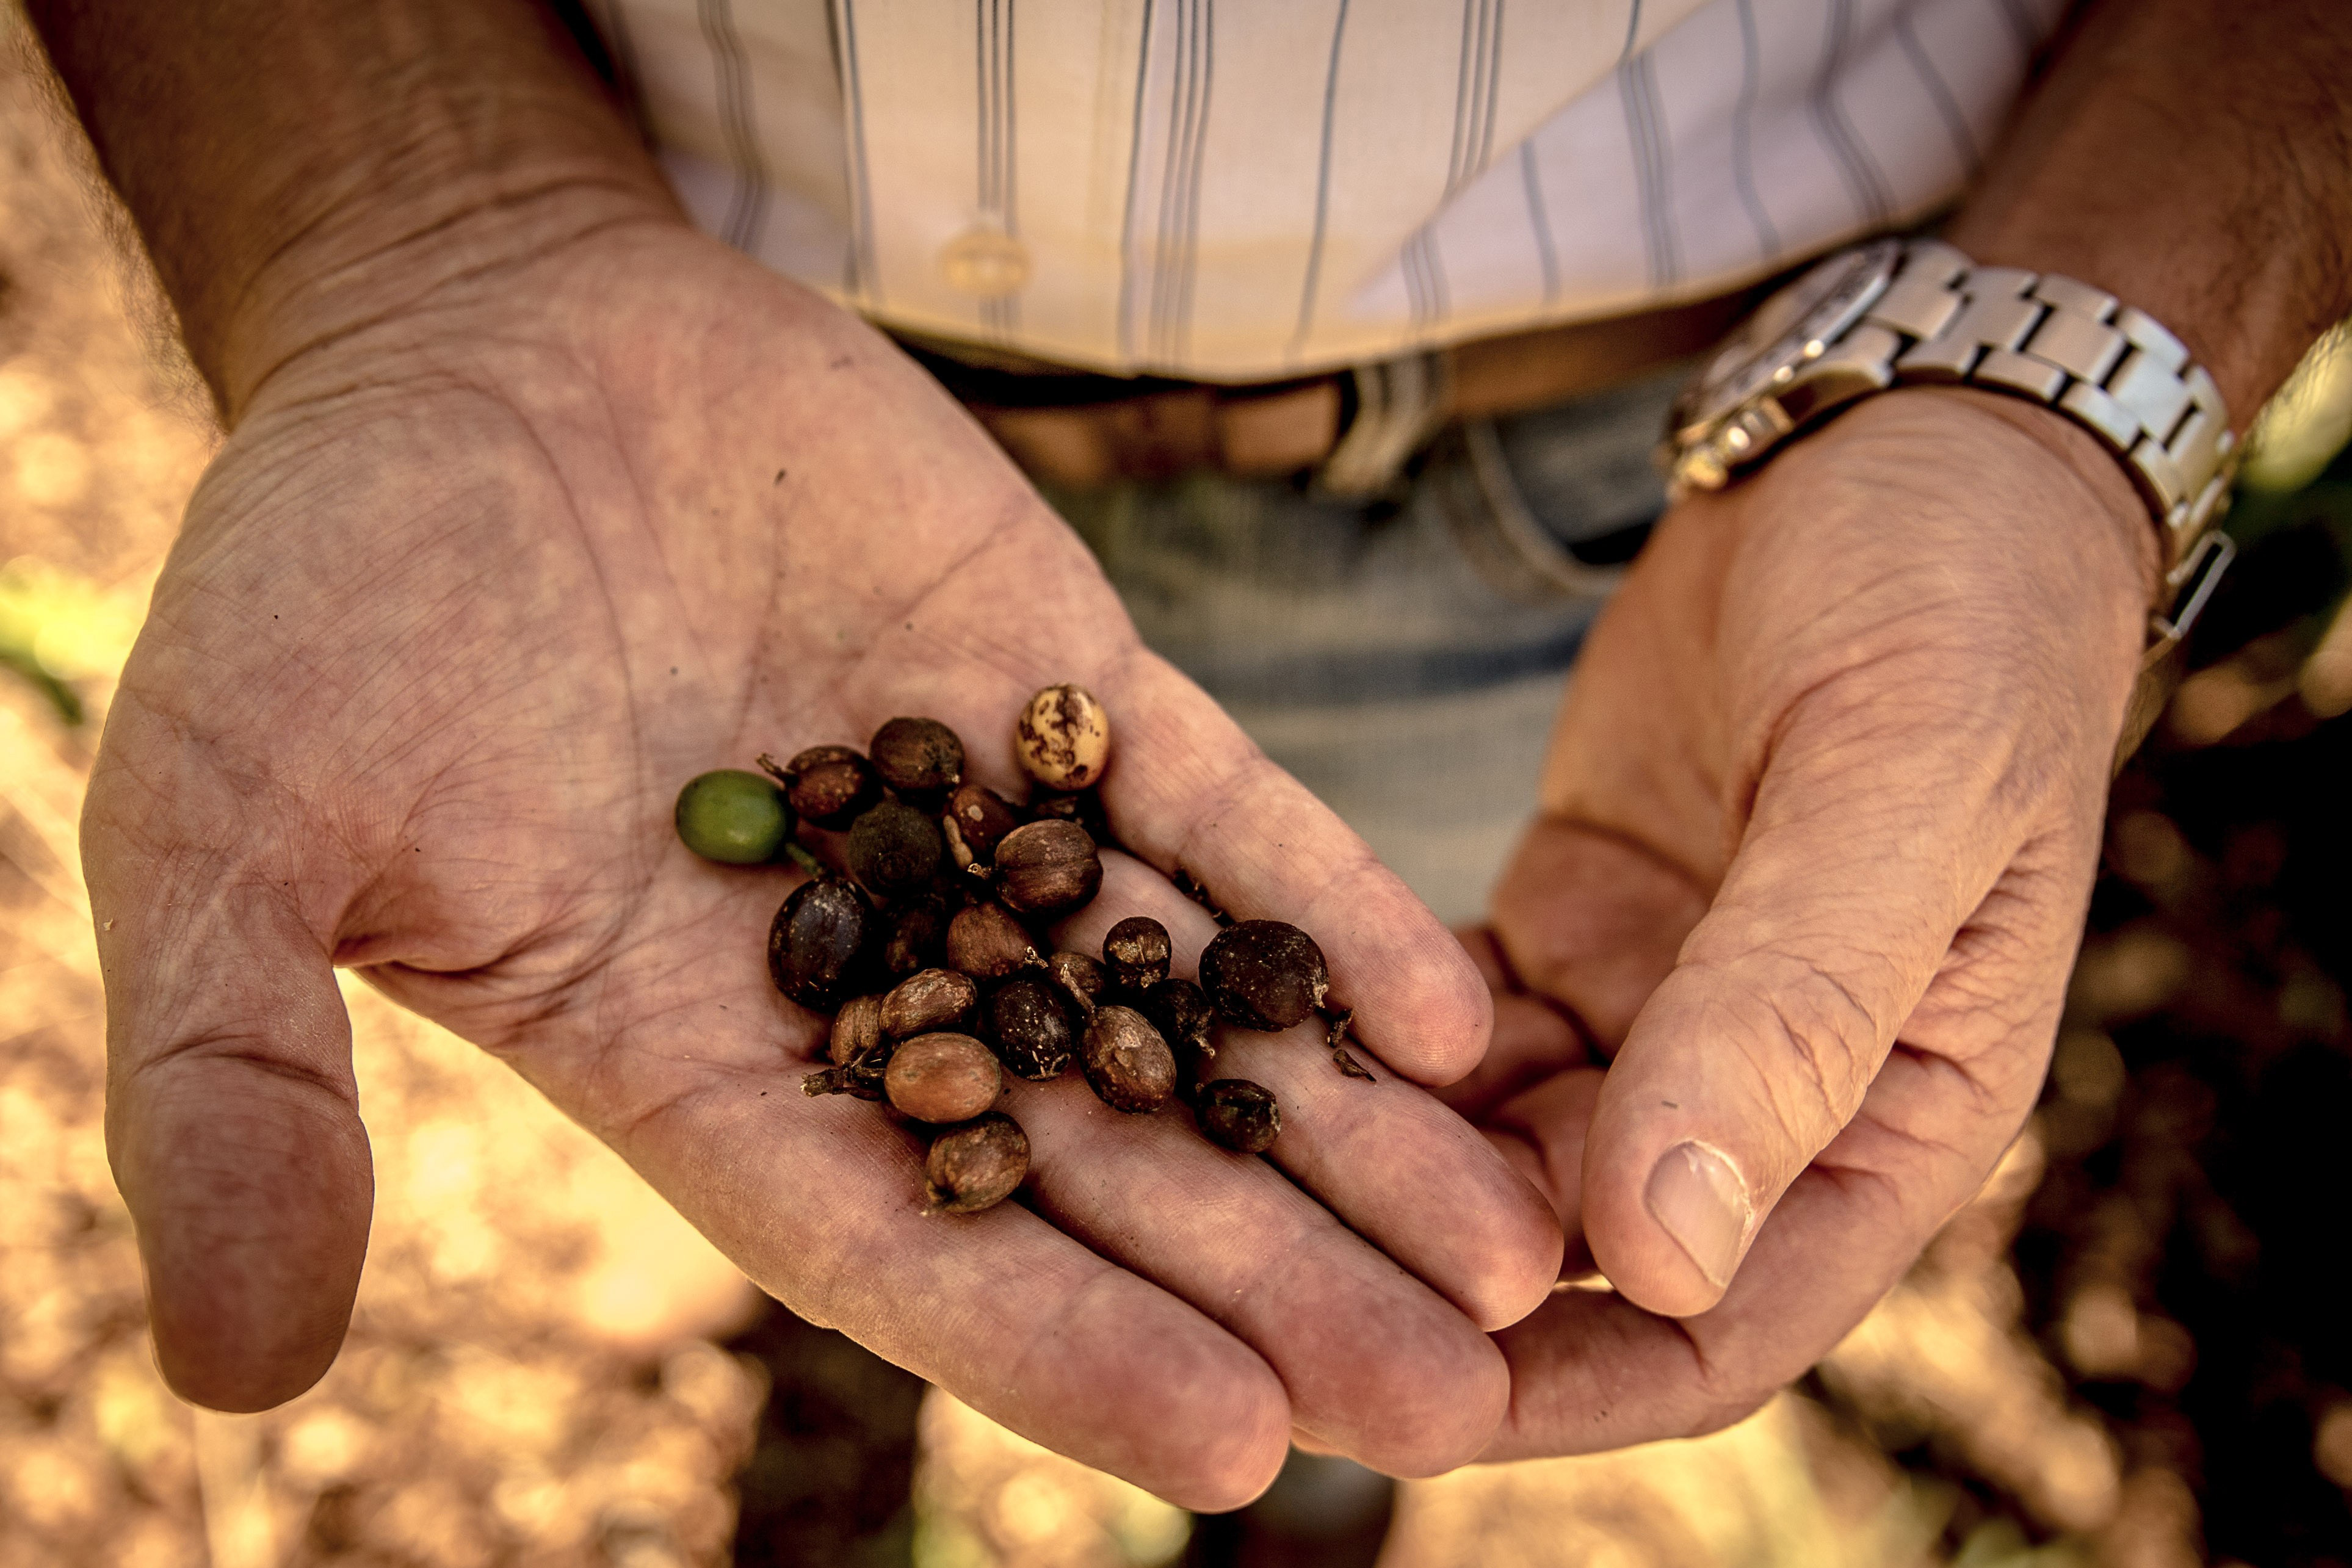 Coffee sales this season will be down after southeastern Brazil deals with one of the worst droughts in decades.